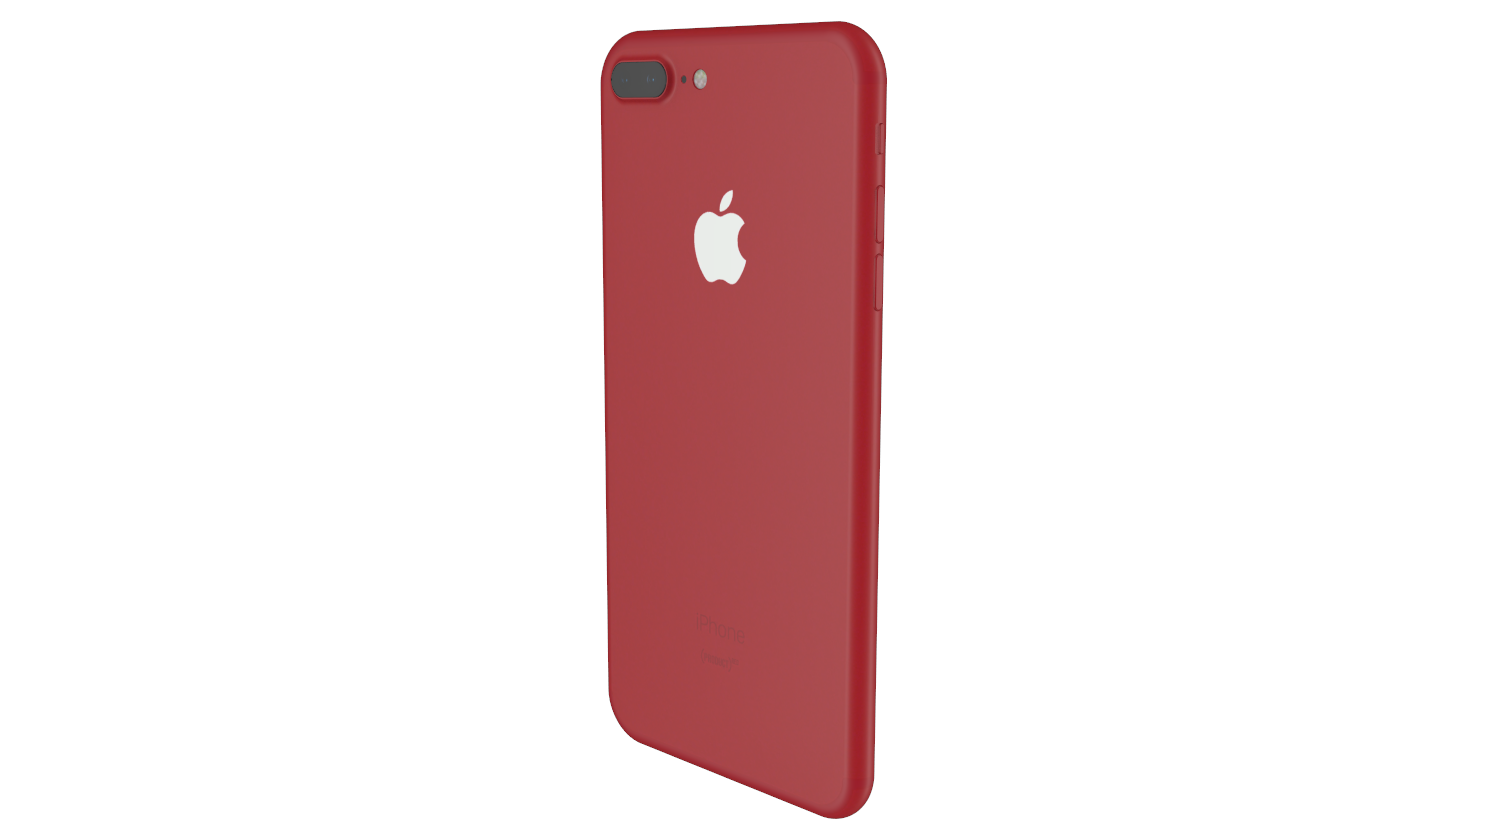 Element3D V2 2 iPhone 7 and 7 Plus Product Red